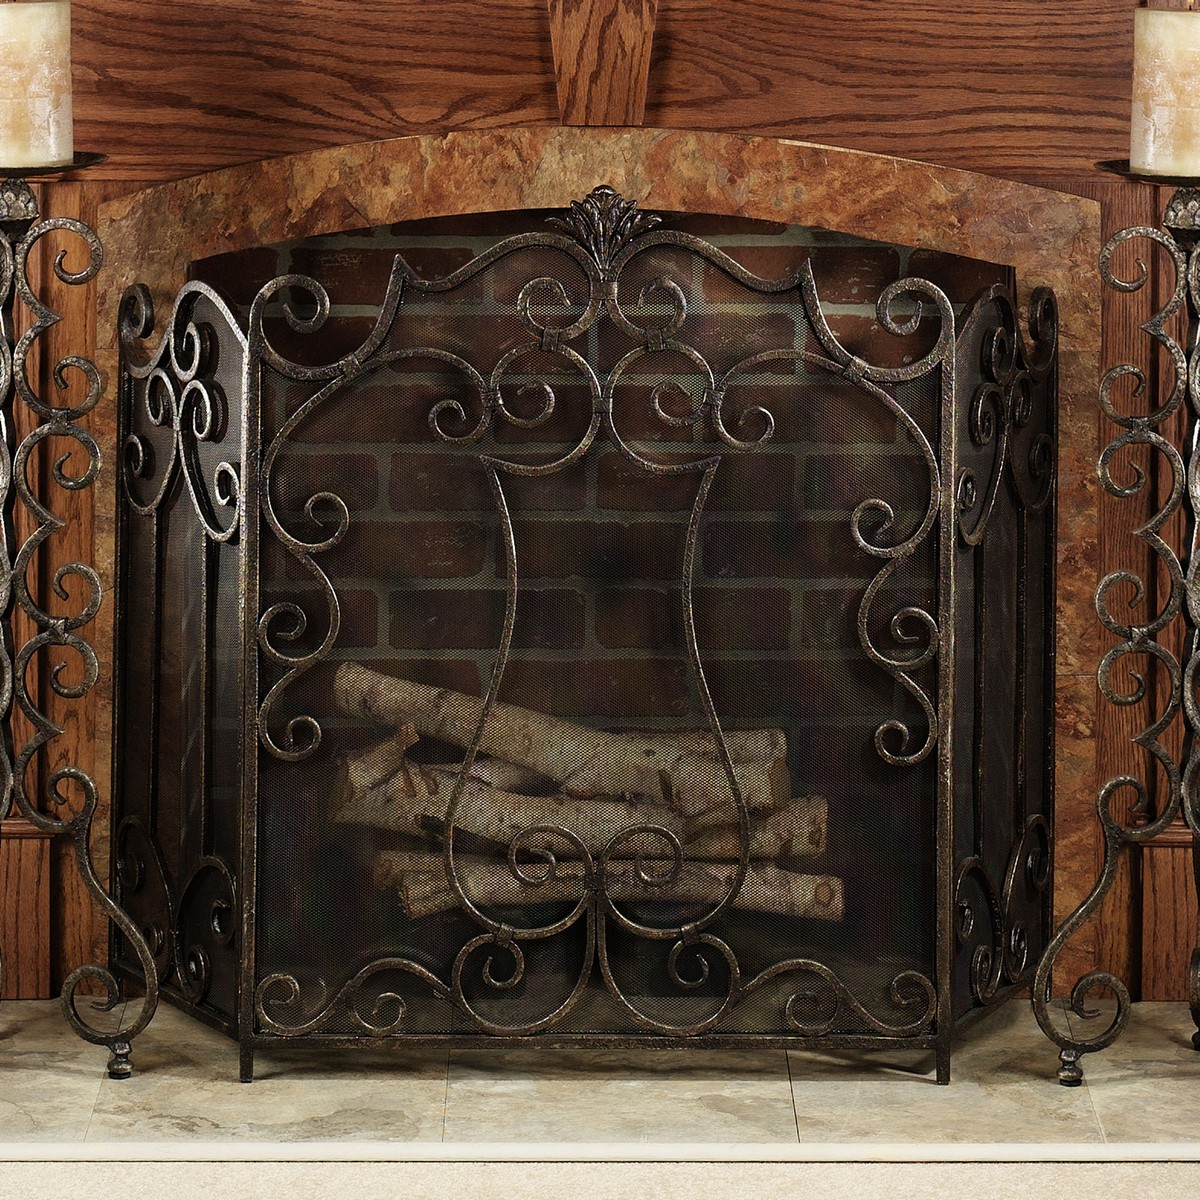 Timber wolf fireplace screen on Custom-Fireplace. Quality ...